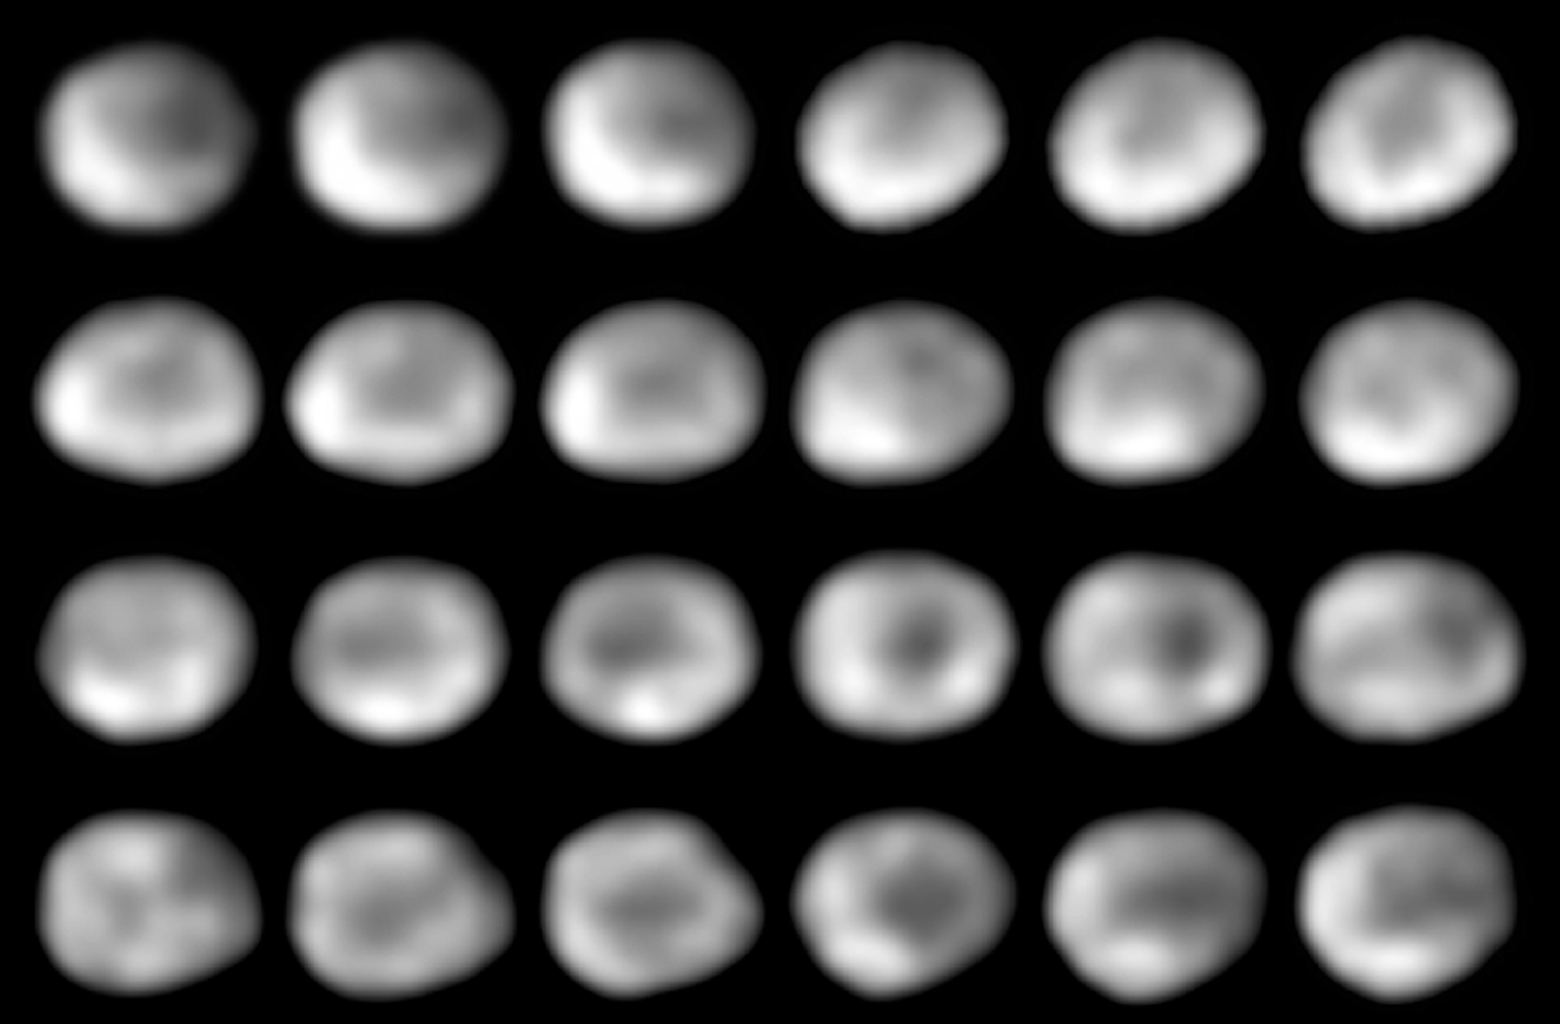 This is a NASA Hubble Space Telescope series of 24 images showing the full 5.34-hour rotation of the 325-mile diameter (525 kilometer) asteroid Vesta.